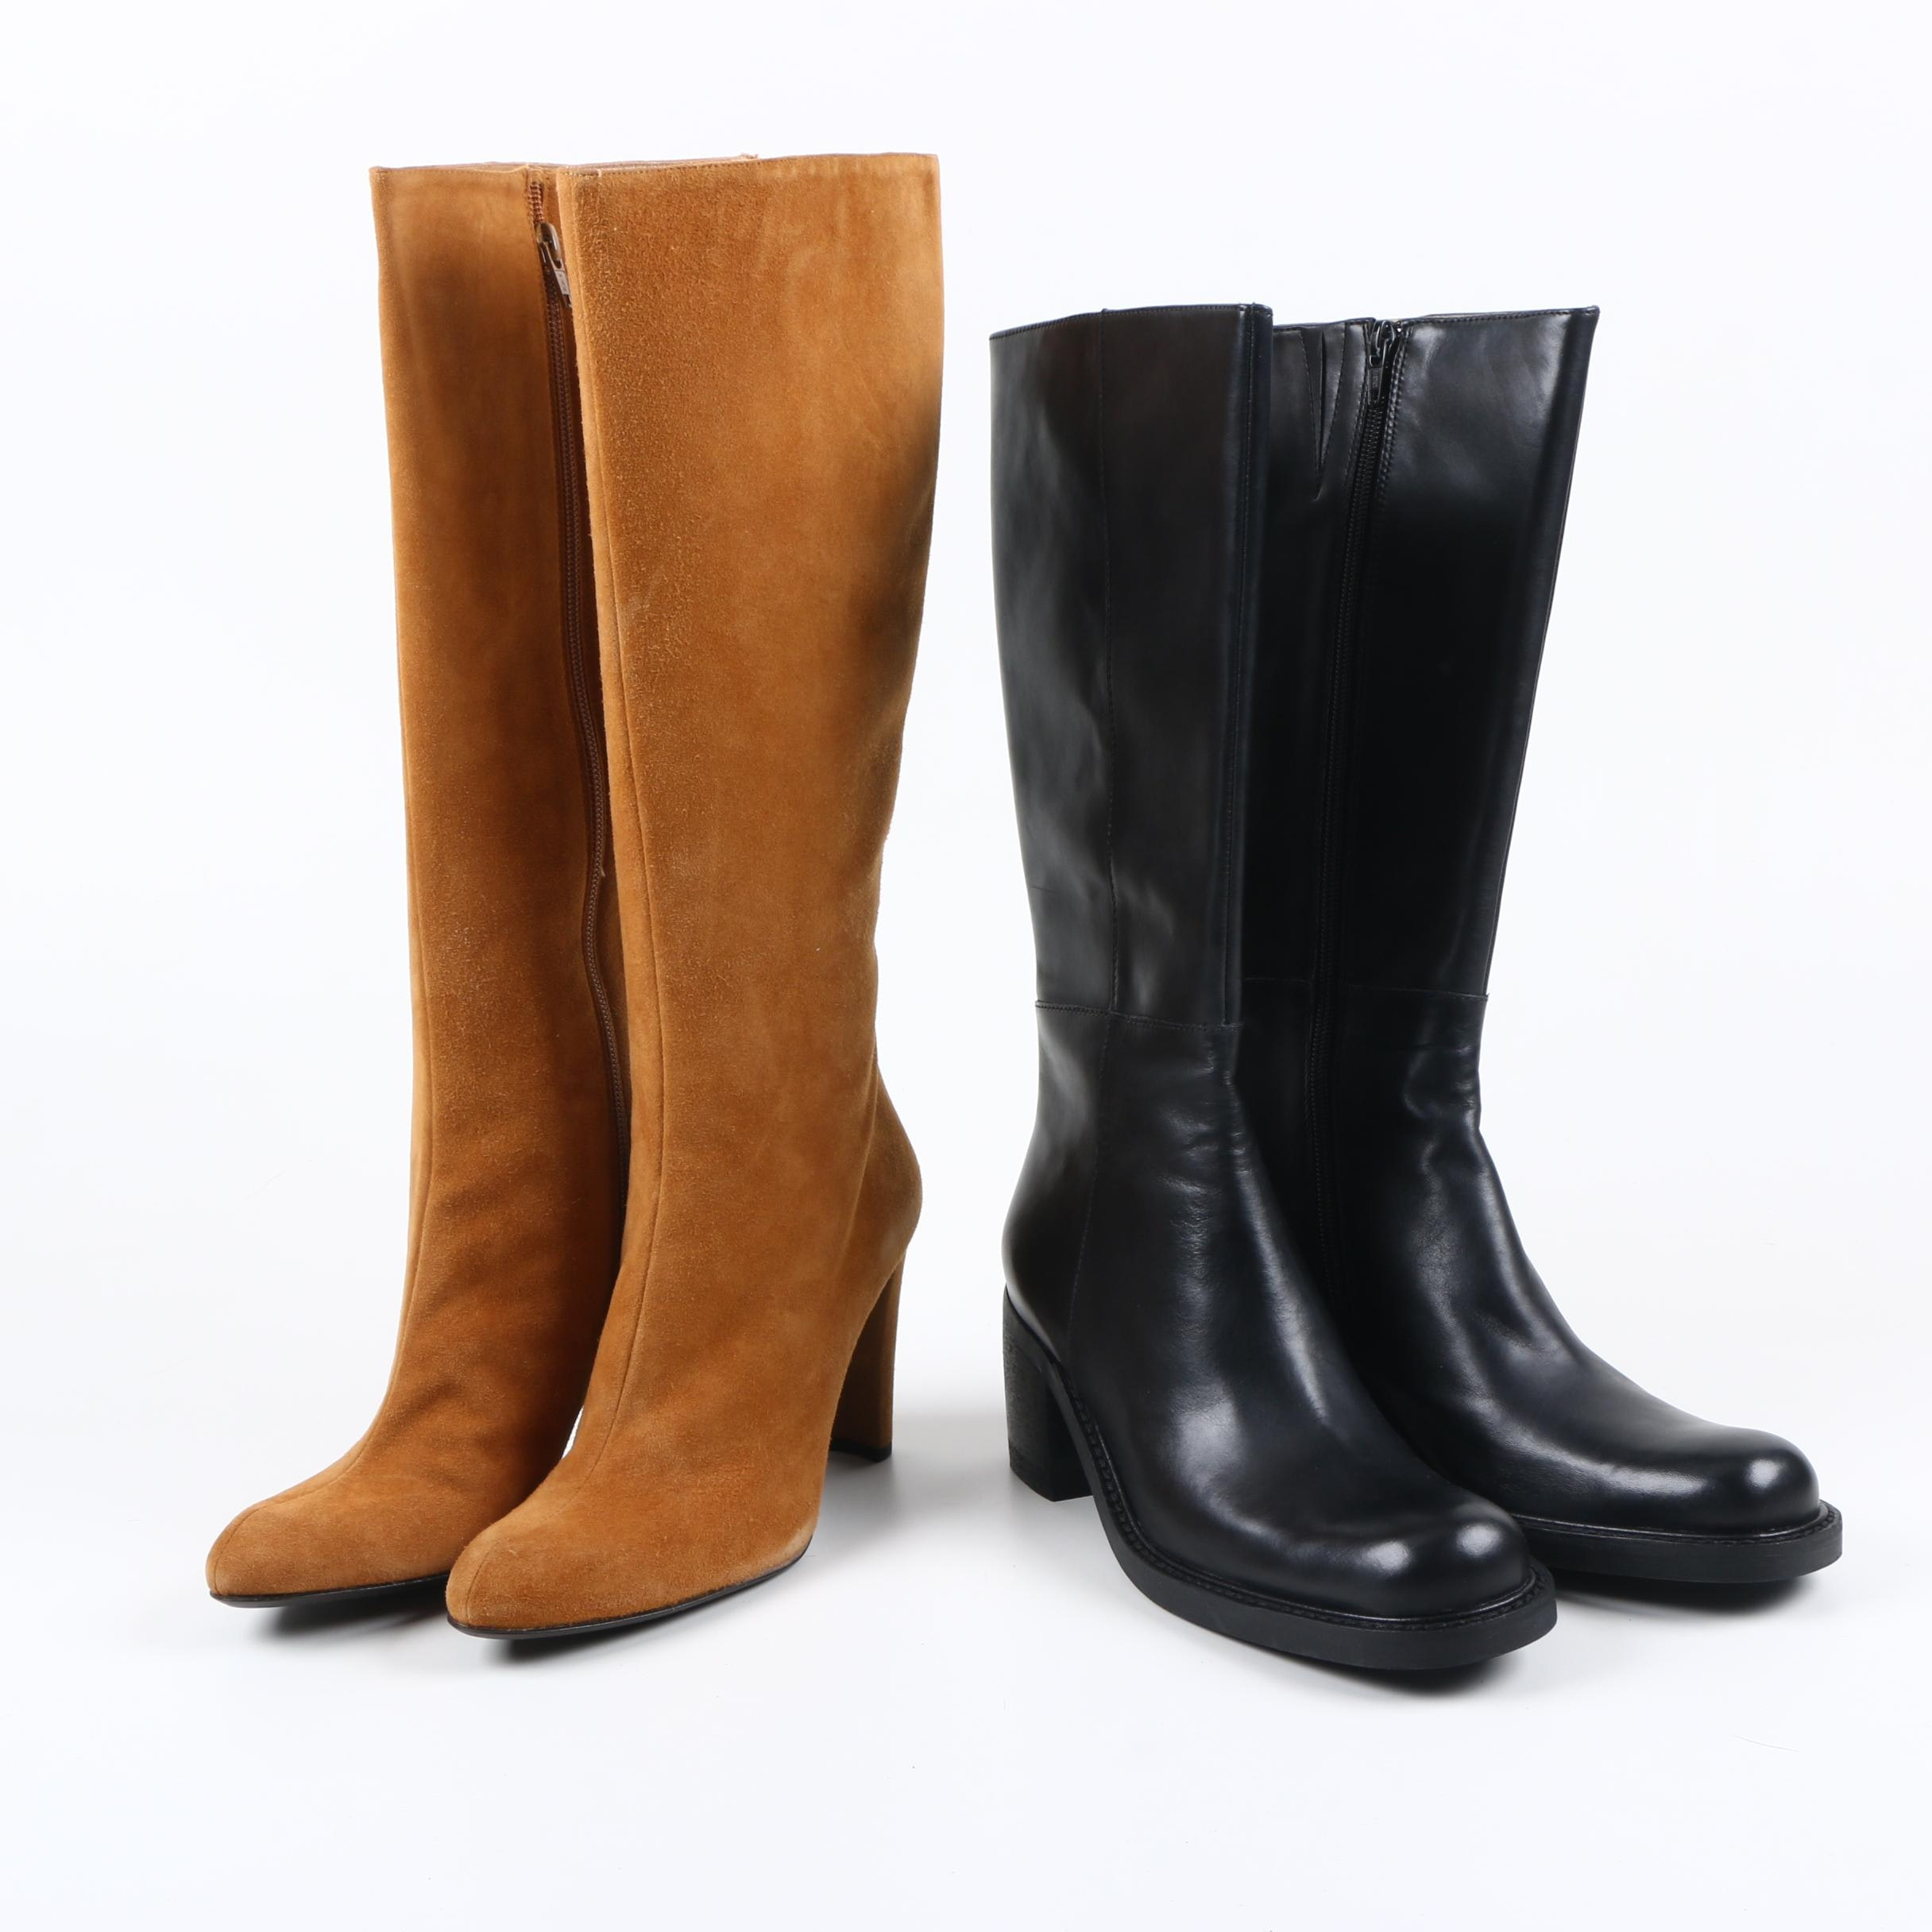 Kenneth Cole and Stuart Weitzman Boots